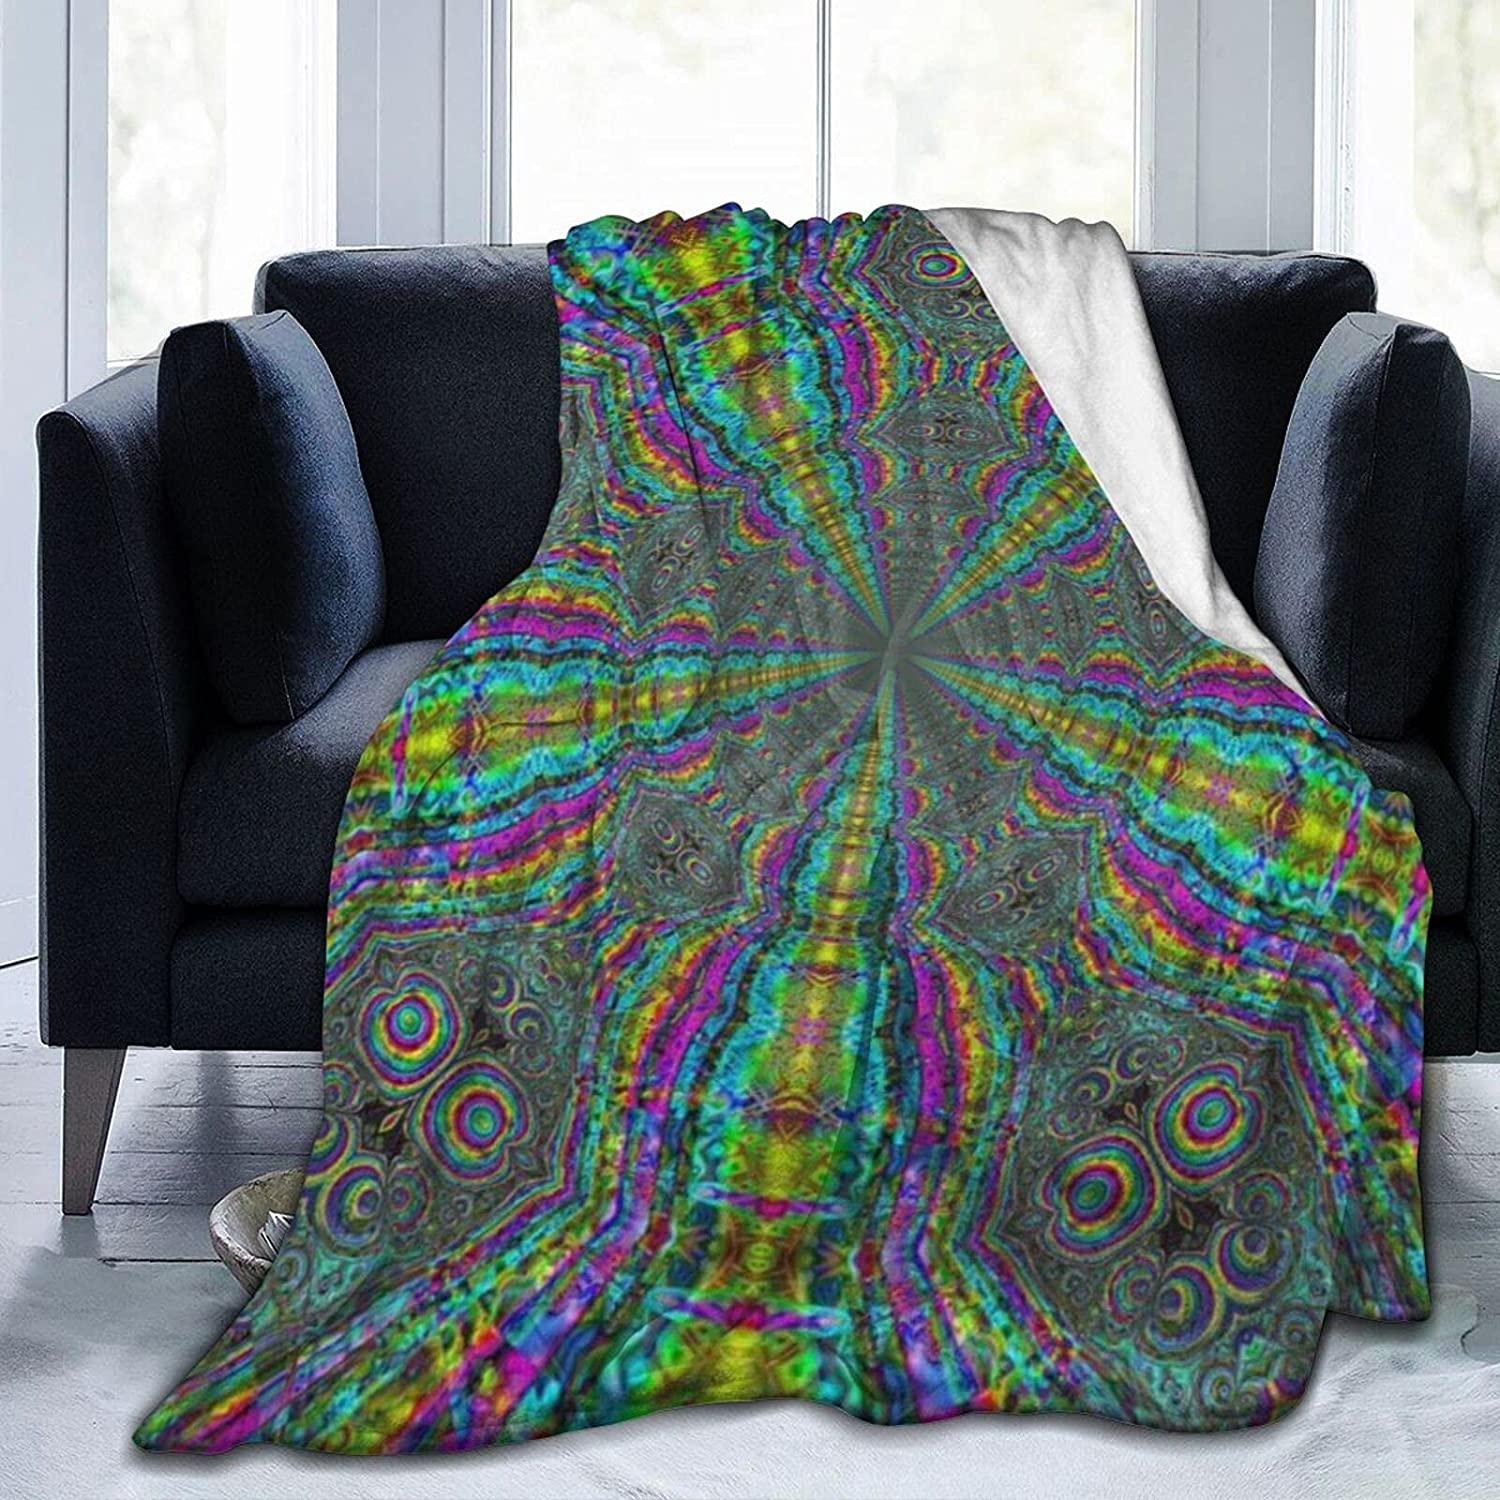 Psychedelic Al sold out. Blanket Super Soft Flannel Throw Ranking TOP2 Lightweight